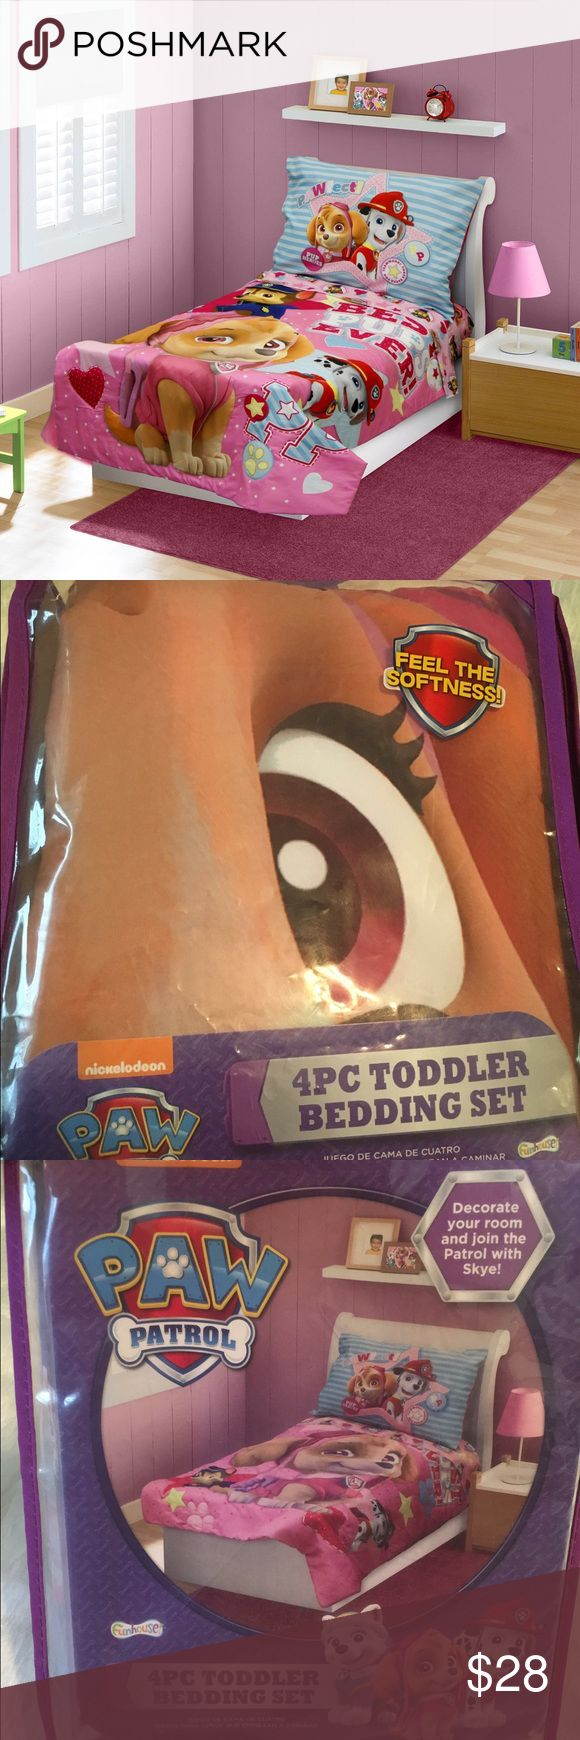 """Paw Patrol Skye 4 pc Bedding Set Your child's favorite Paw Patroller, Skye, is featured in the Best Pups Ever 4-Piece Toddler Bedding Set. A reversible bedspread featuring Skye, Chase and Marshall with a Best Pups Ever theme reverses to an allover Paw Patrol Print. The flat sheet and fitted sheet feature the same allover print. Completing with a matching pillow case featuring a print of your child's Paw Patrol friends.   Bedspread: 42"""" x 58"""" Flat sheet: 45"""" x 60"""" Fitted sheet: 28"""" x 52""""…"""